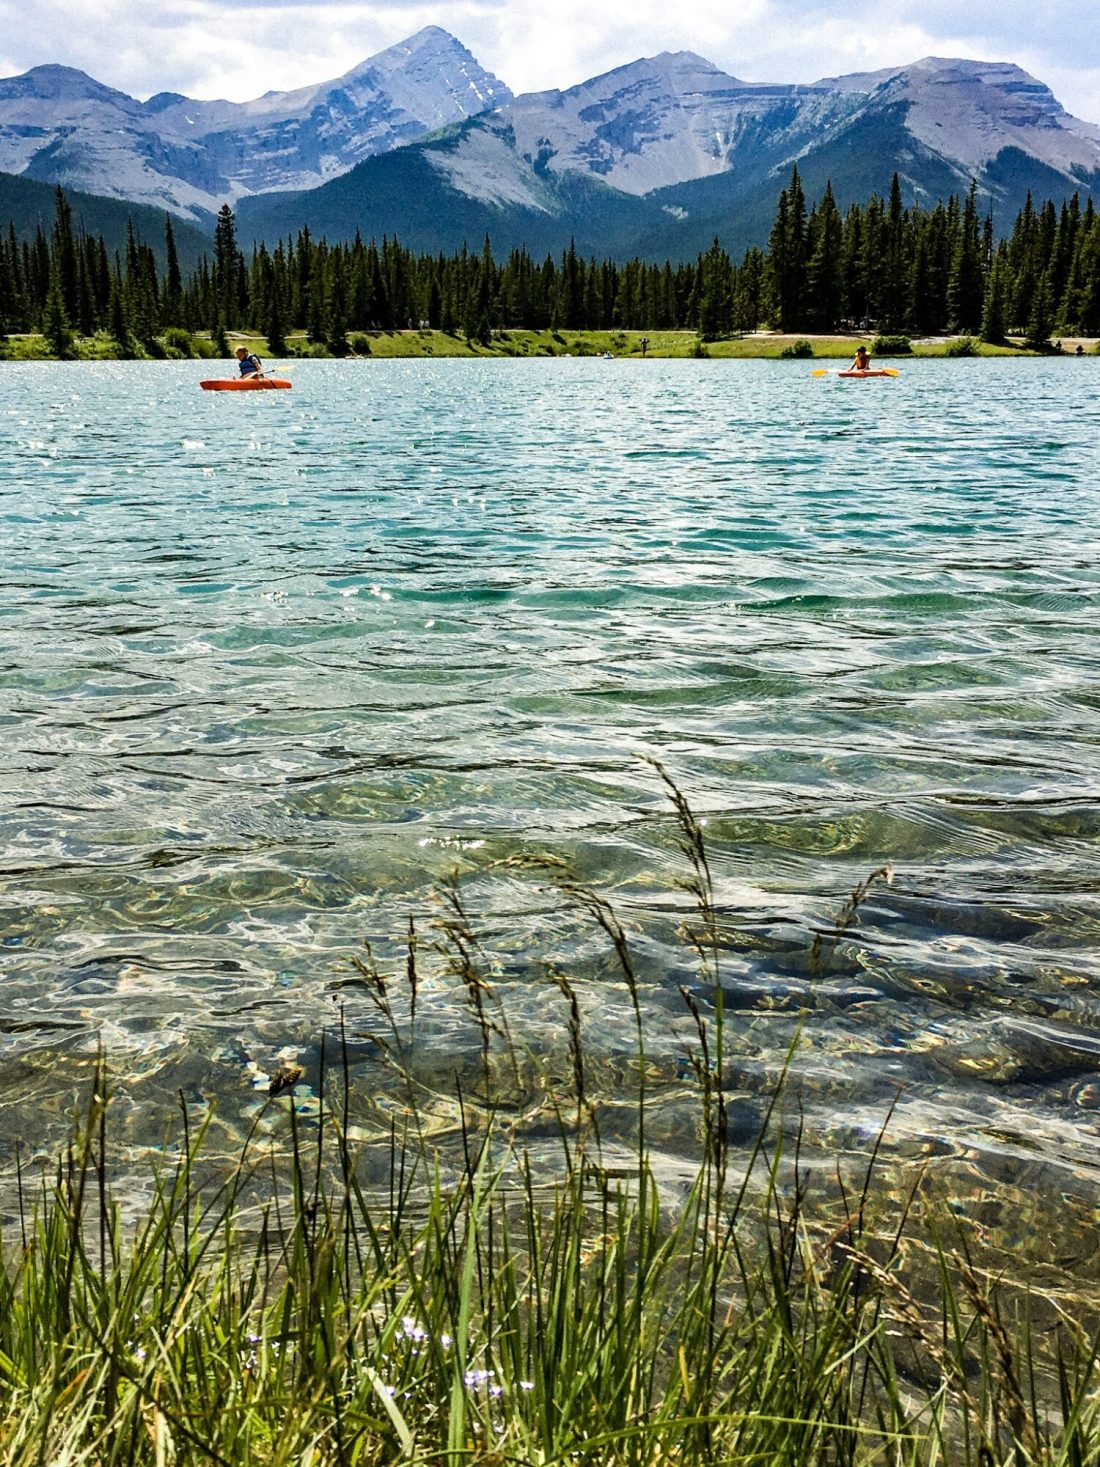 people paddling on forget me not pond in alberta